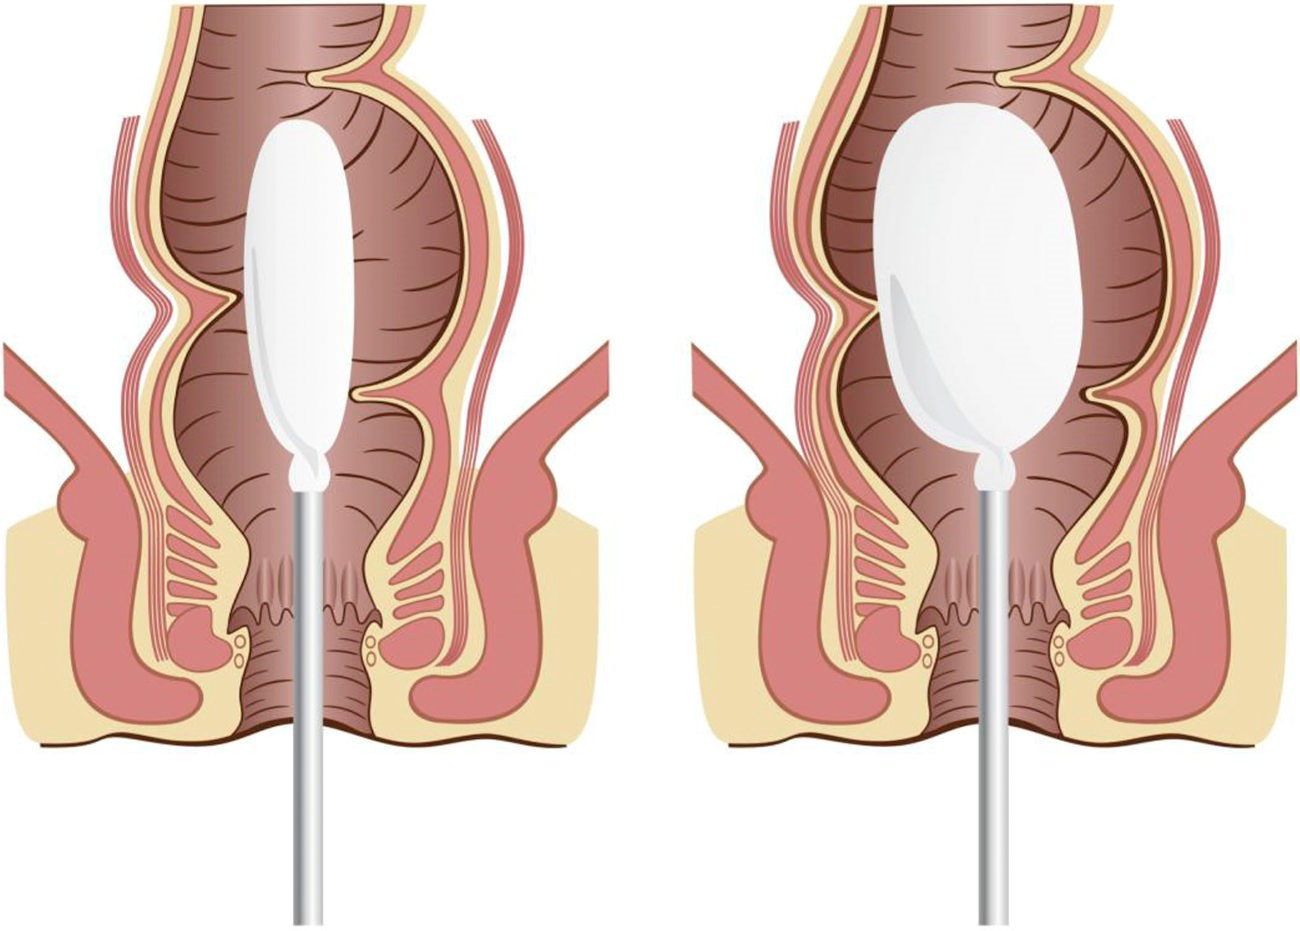 Anorectal manometry کلیات